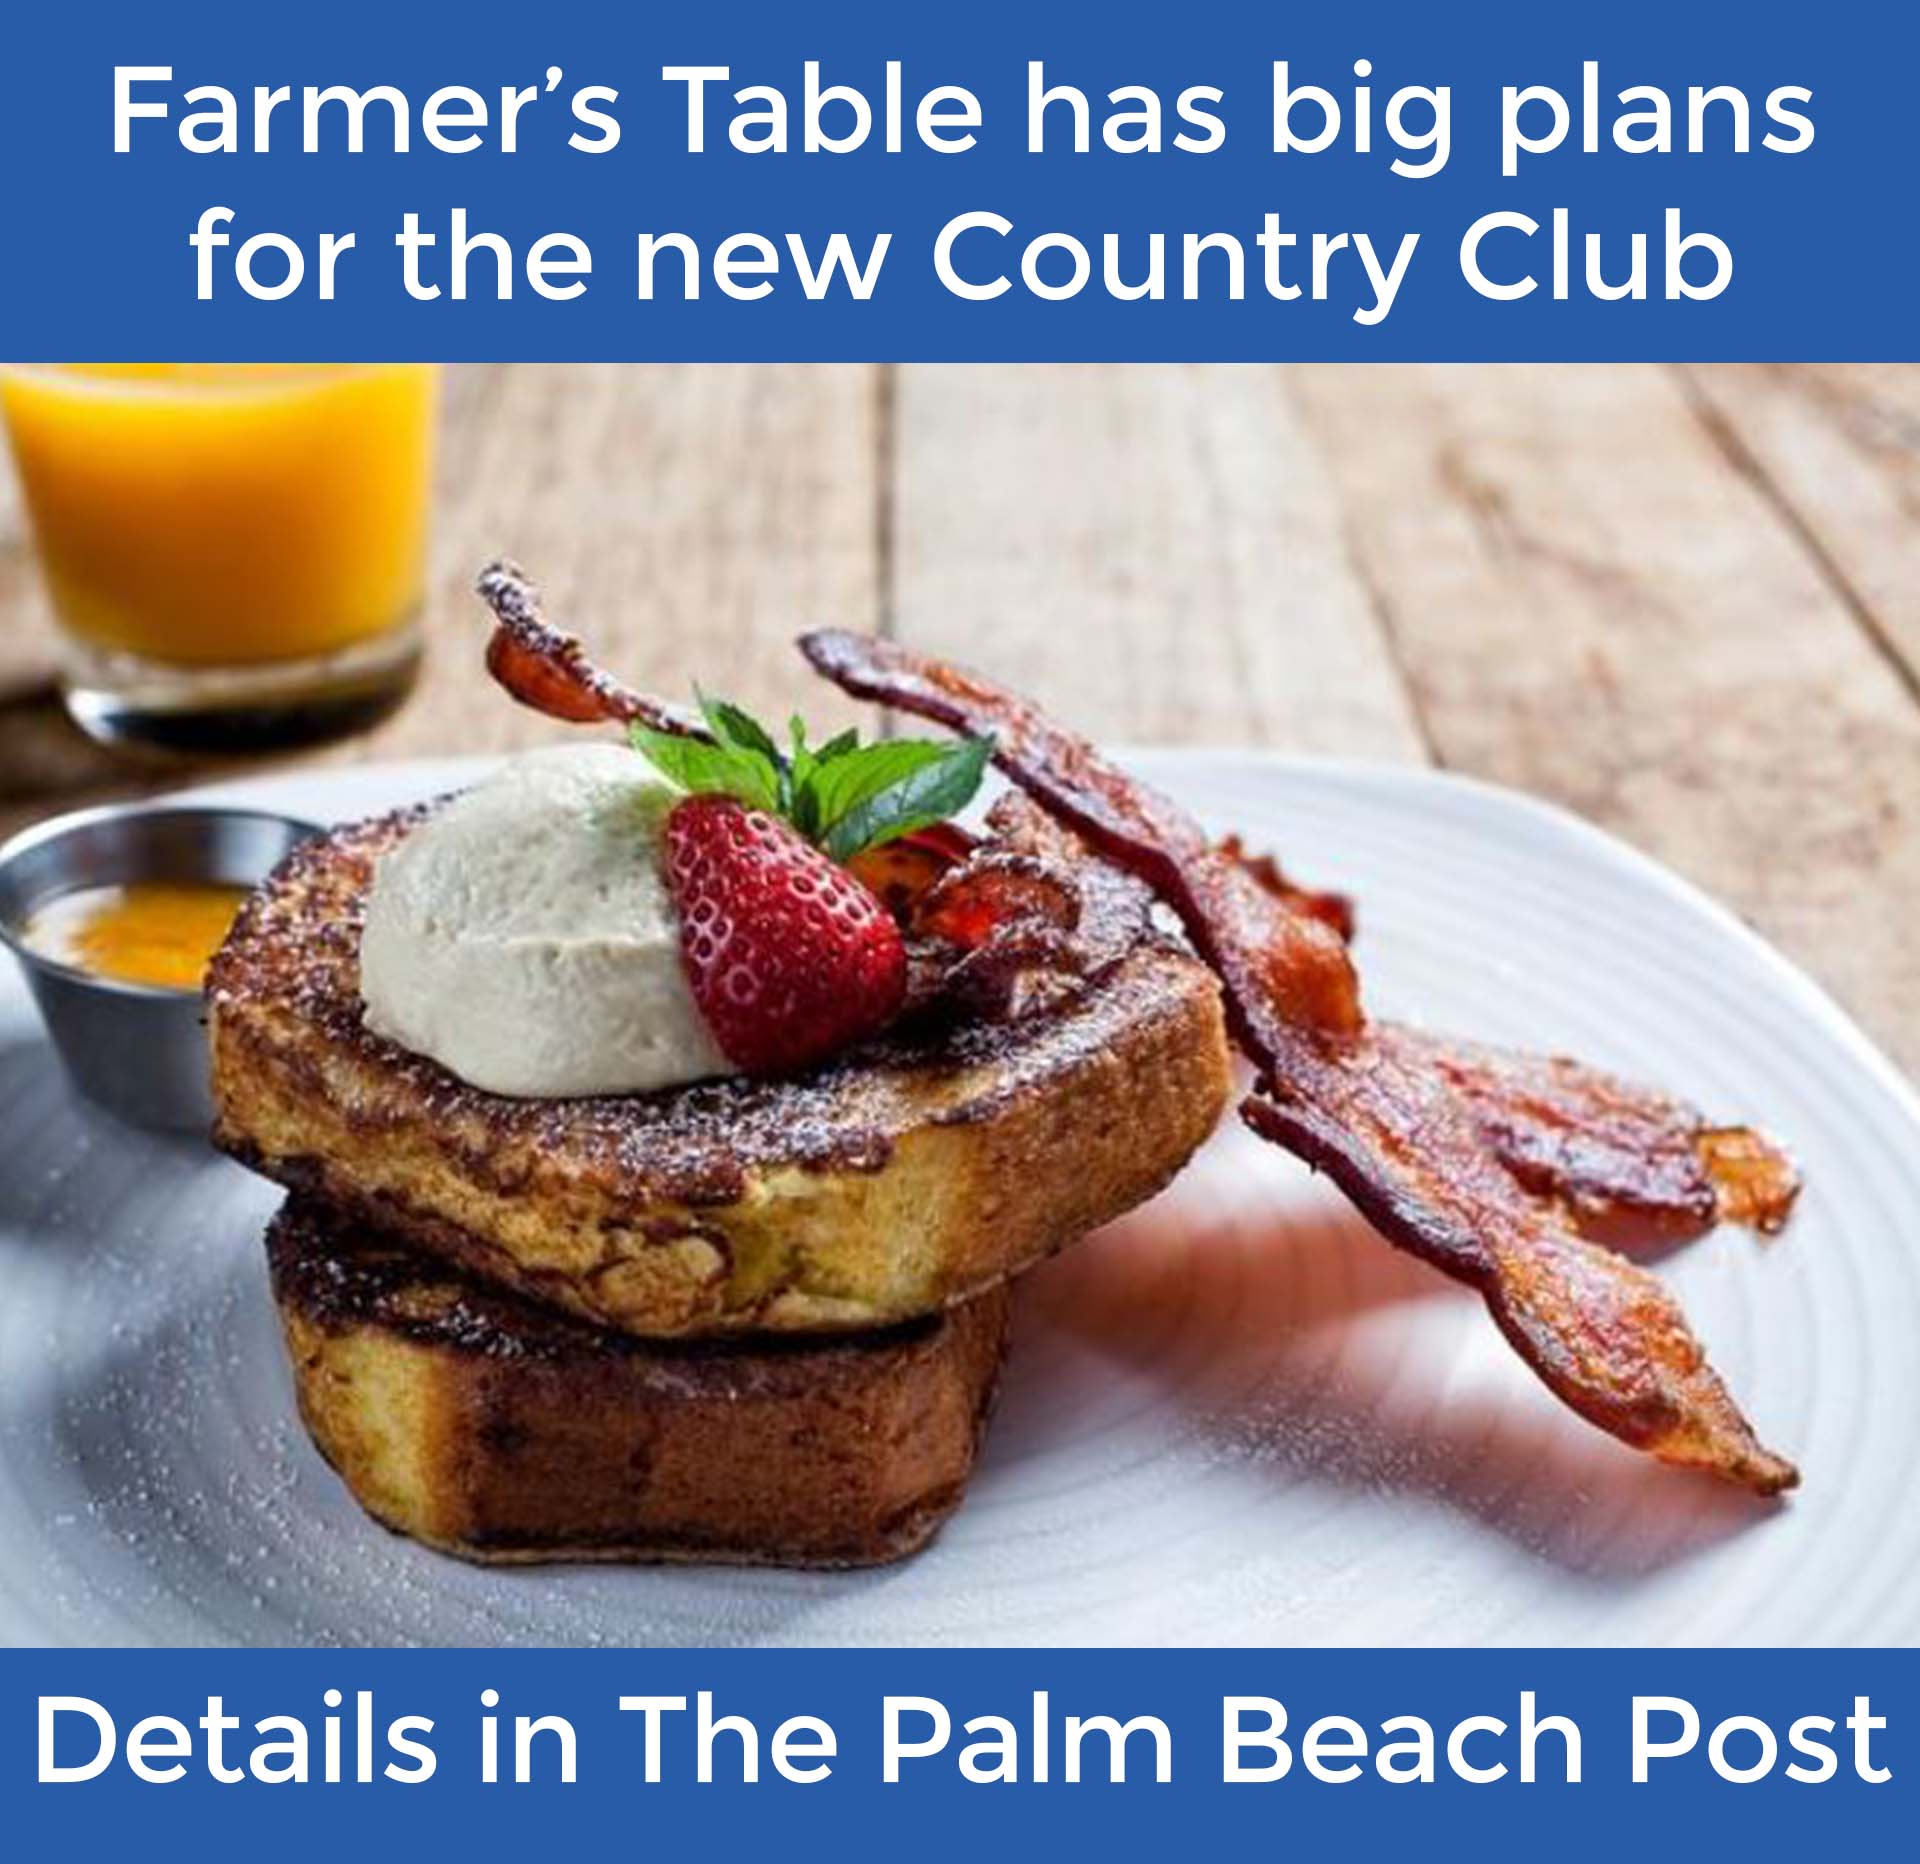 Image of almond milk-bread french toast, strawberries and bacon on a white plate. Glass of orange ju